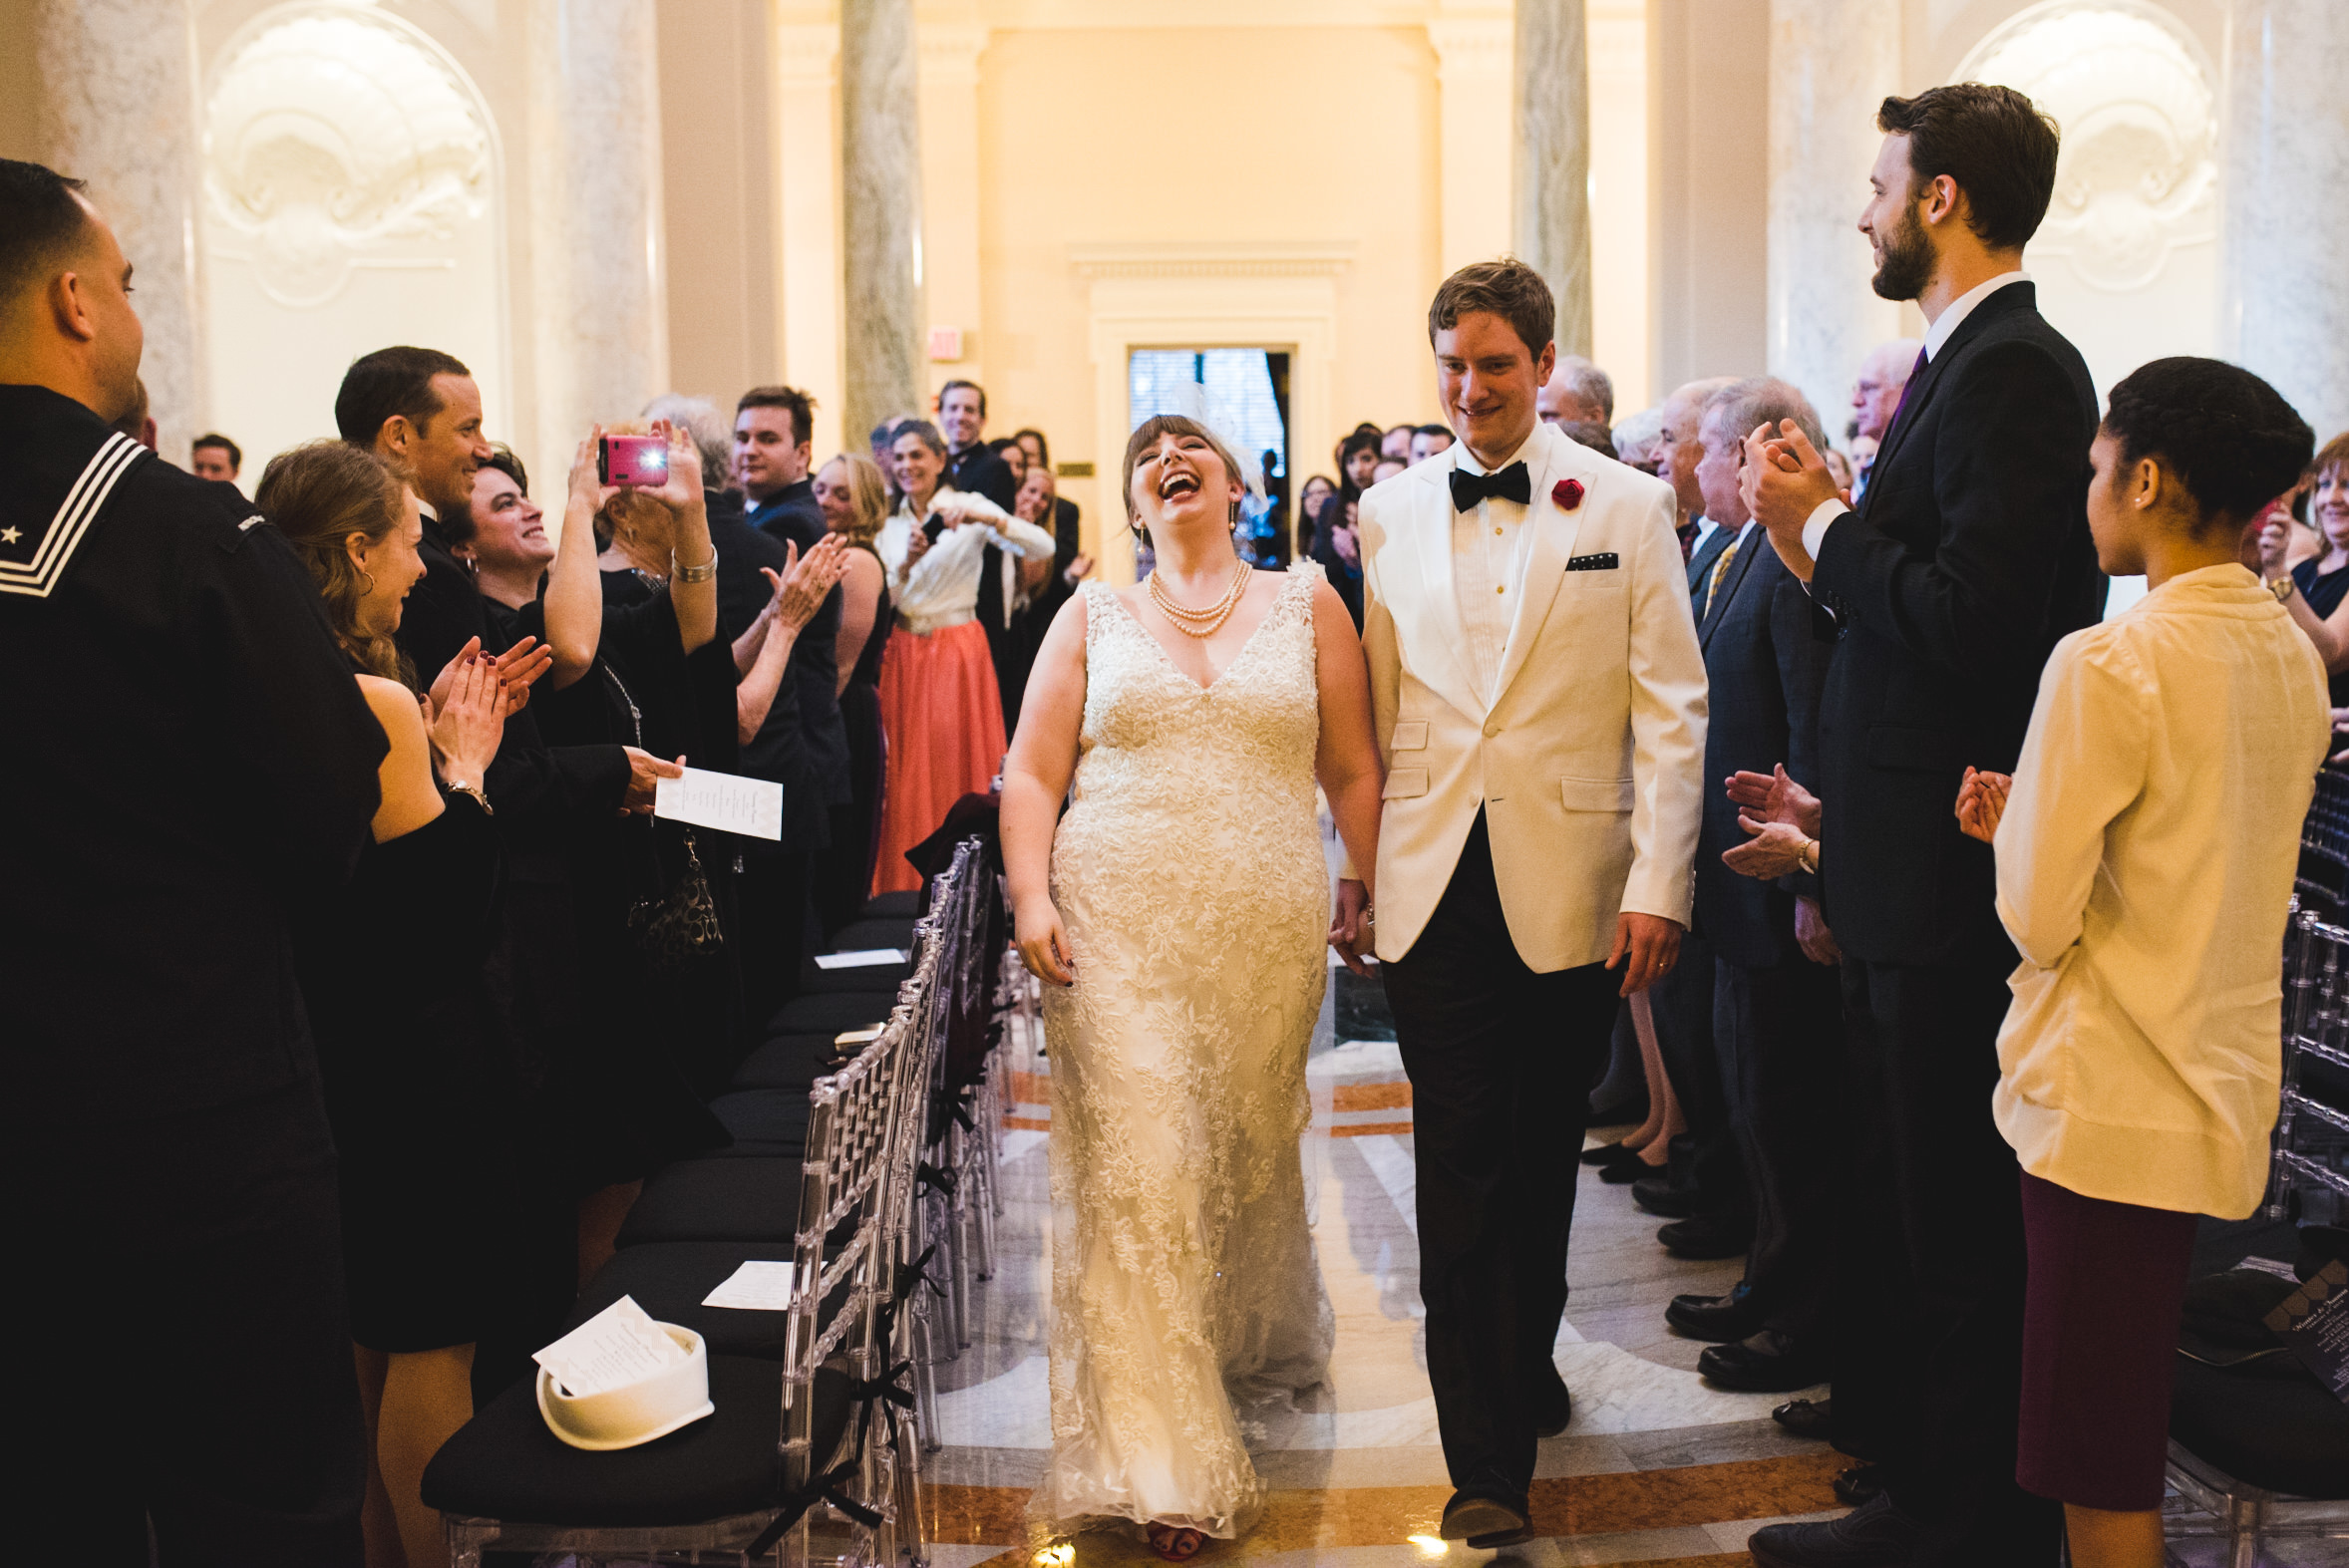 Carnegie Institution for Science Wedding Photographer Mantas Kubilinskas-26.jpg